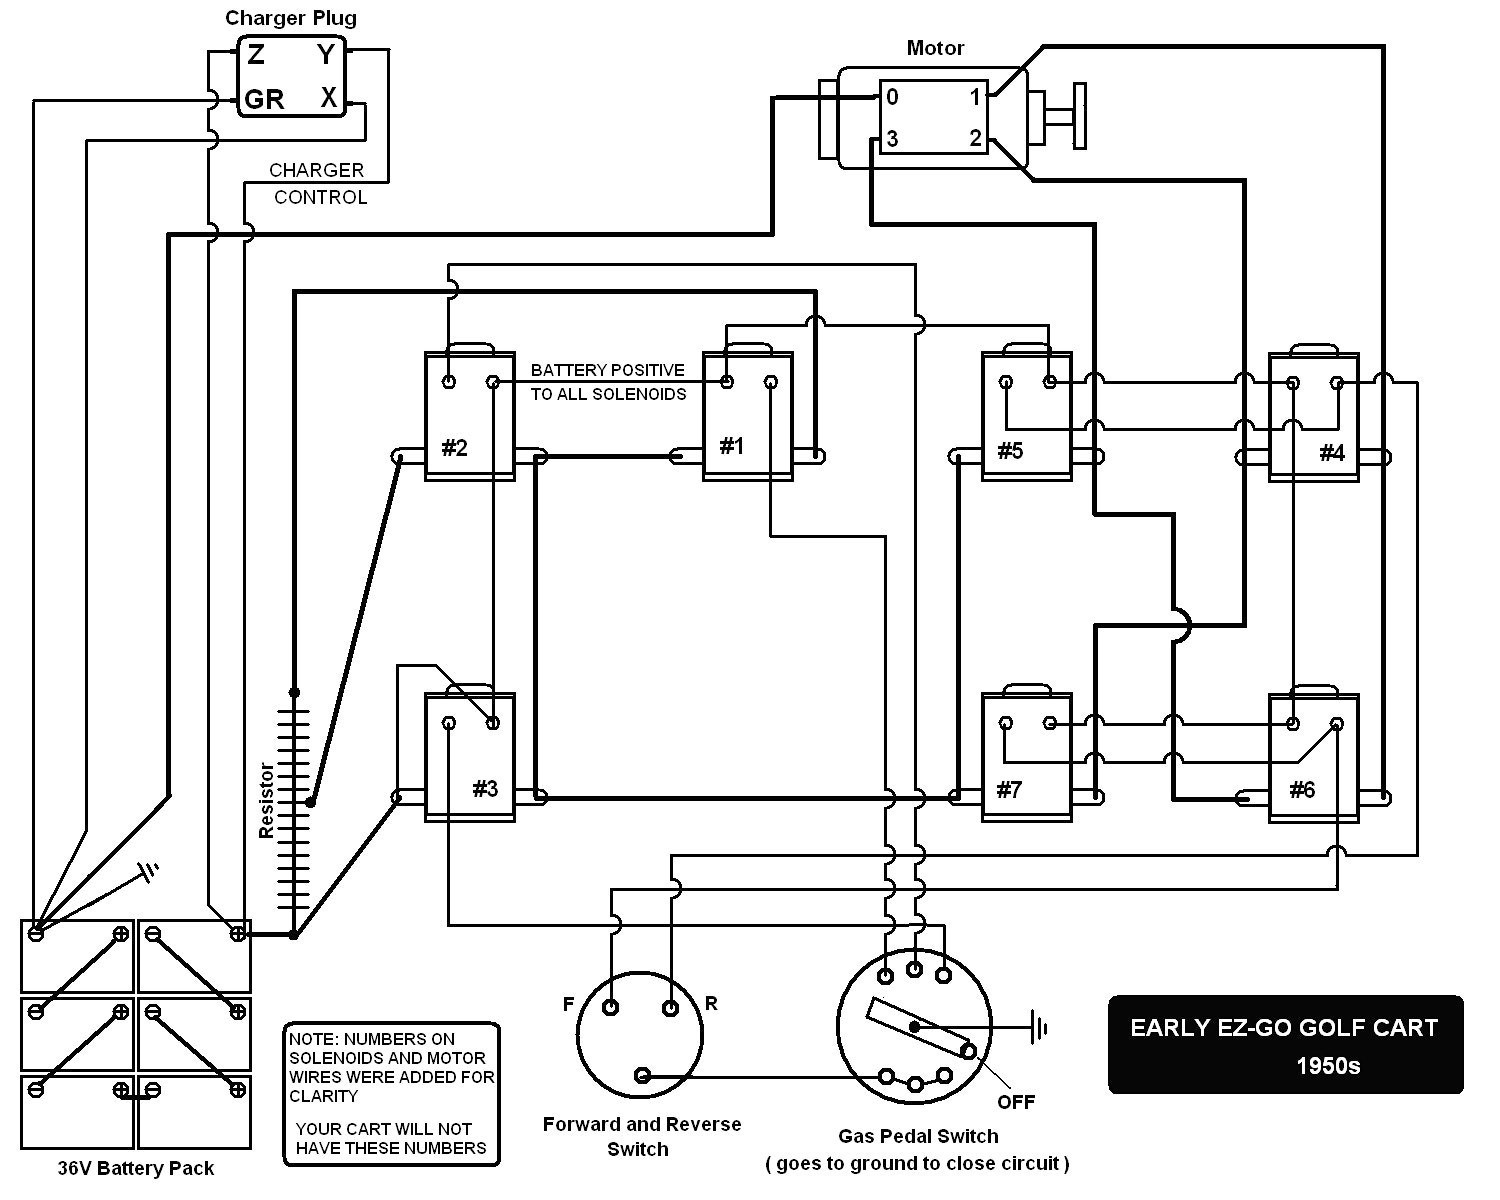 hight resolution of 1986 club car wiring diagram wiring diagram image 1996 club car wiring diagram 86 club car